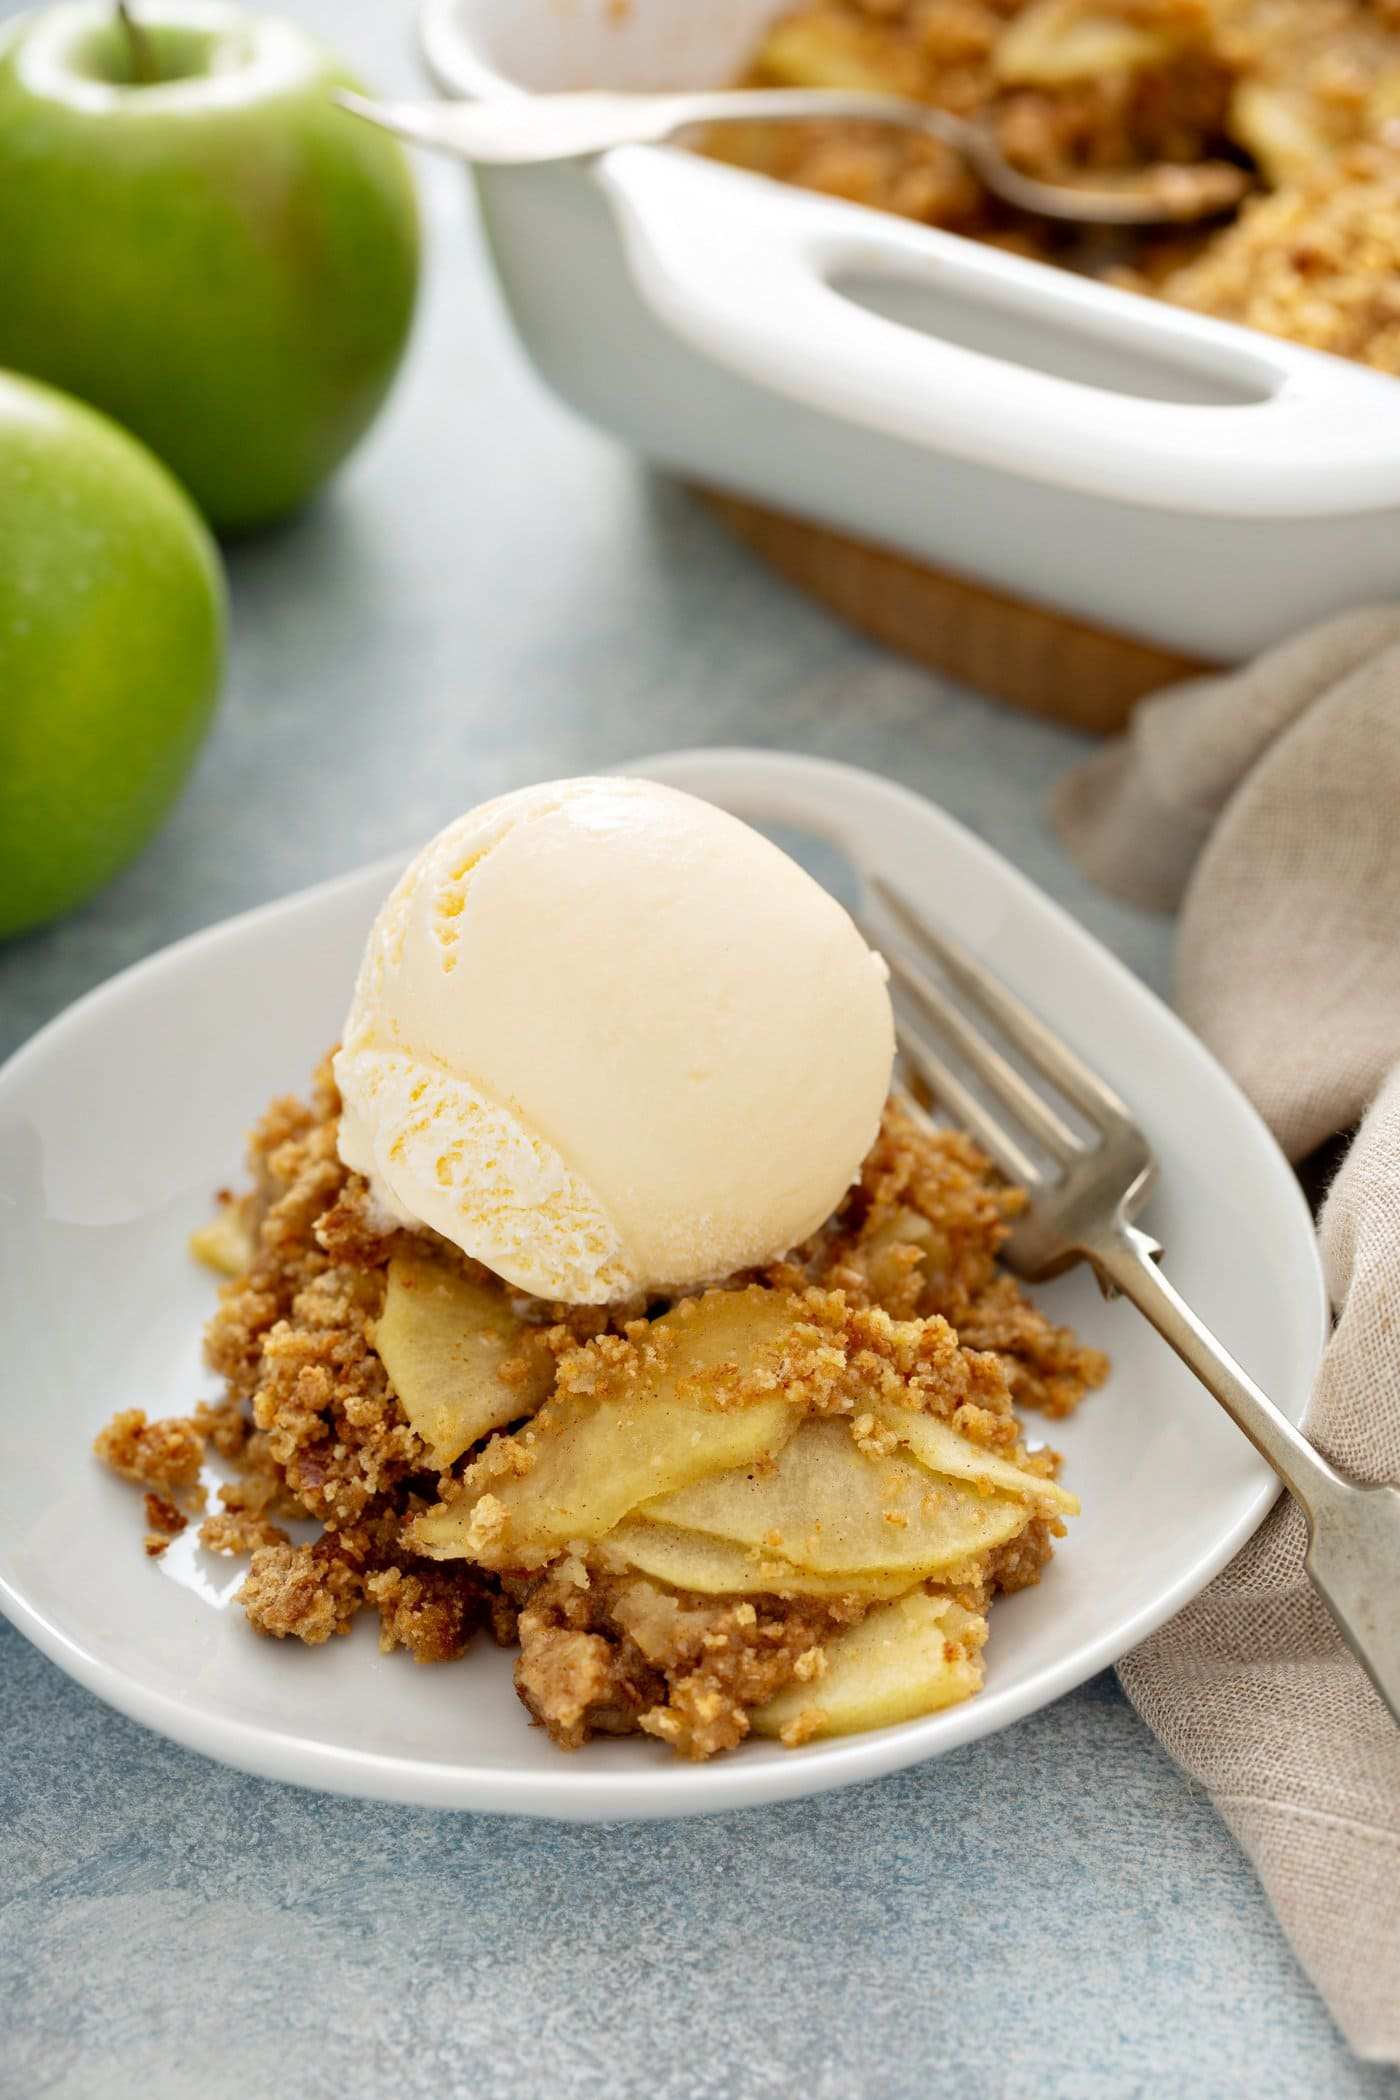 Apple brown Betty in a dessert dish. There are sliced apples with a brown bread crumb topping. The desssert is topped with a scoop of vanilla ice cream. A fork is on the plate next to the apple brown Betty. Apples, a baking dish with the dessert, and a linen napkin are behind the dessert plate.